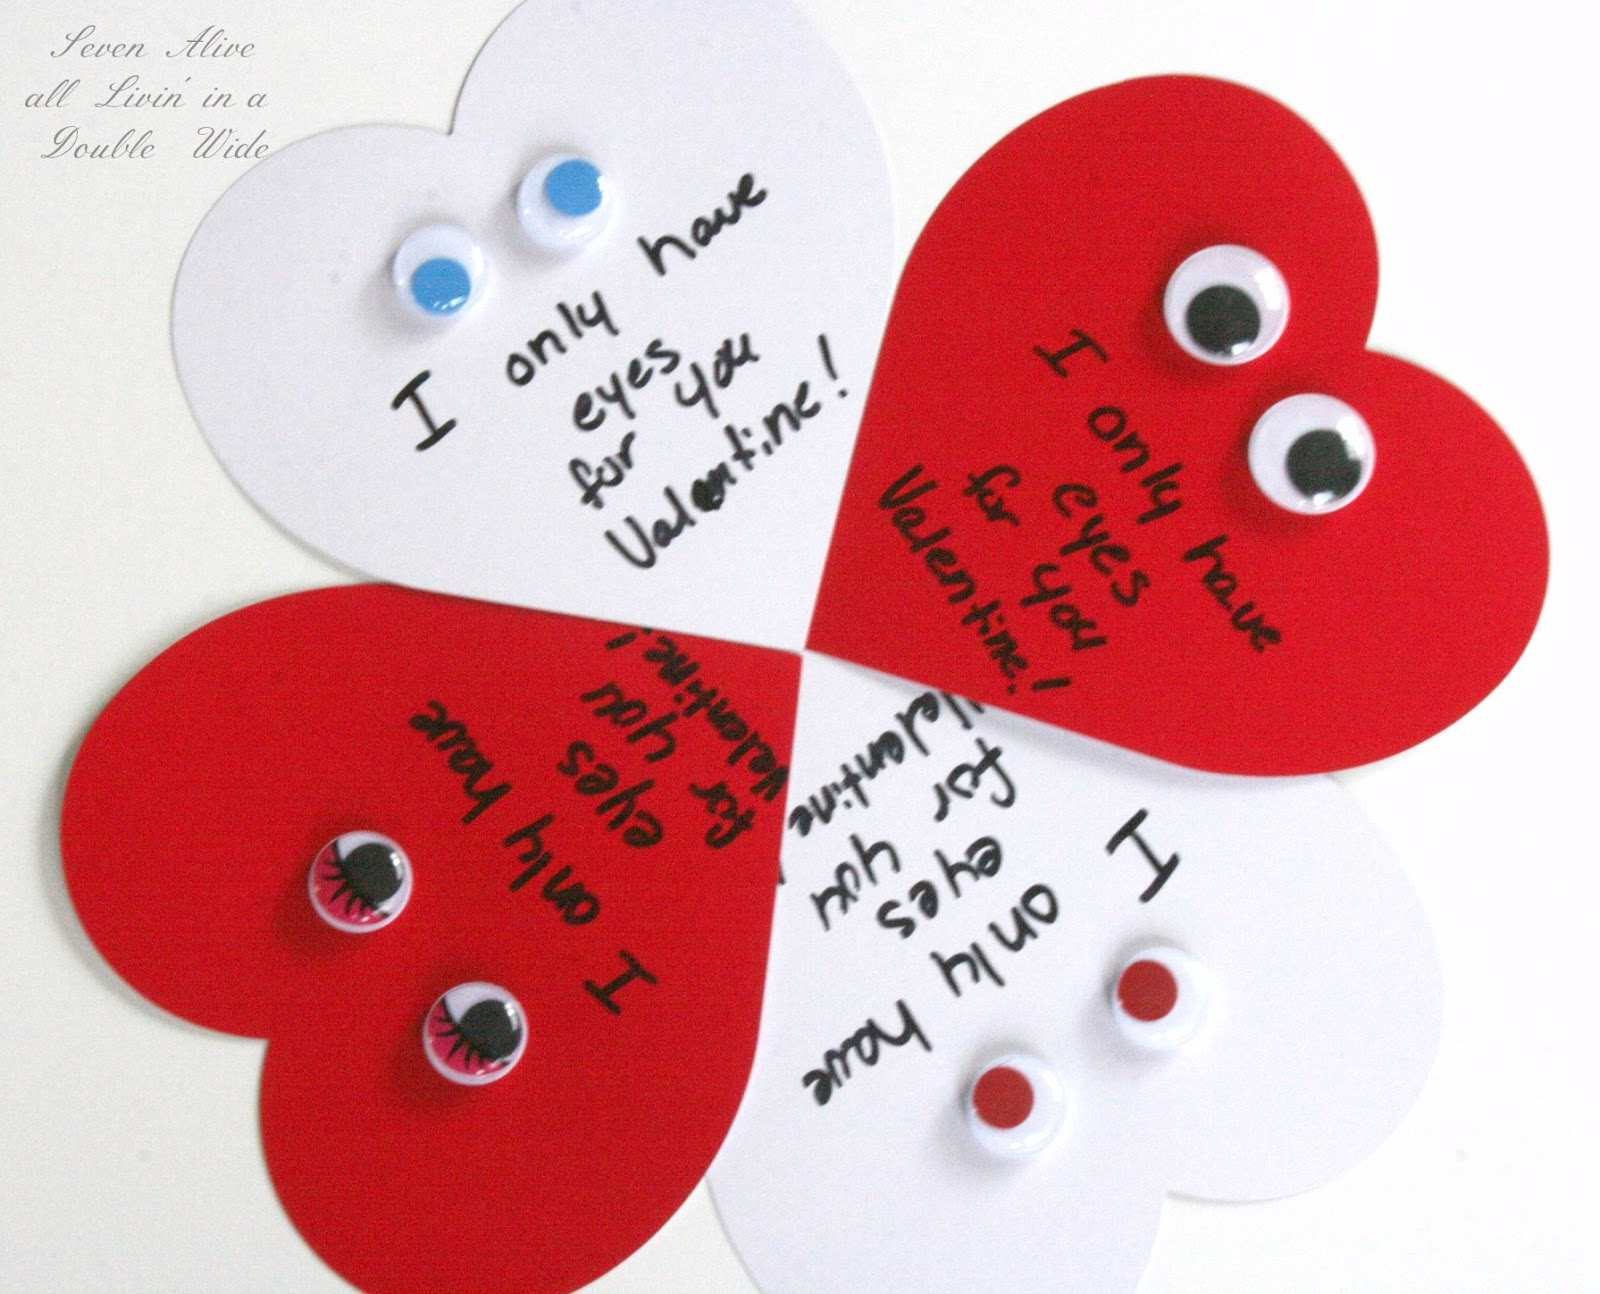 Cheesy Valentines Day Cards 2016 Valentines Day Ideas Wishes – Cheesy Valentines Day Cards